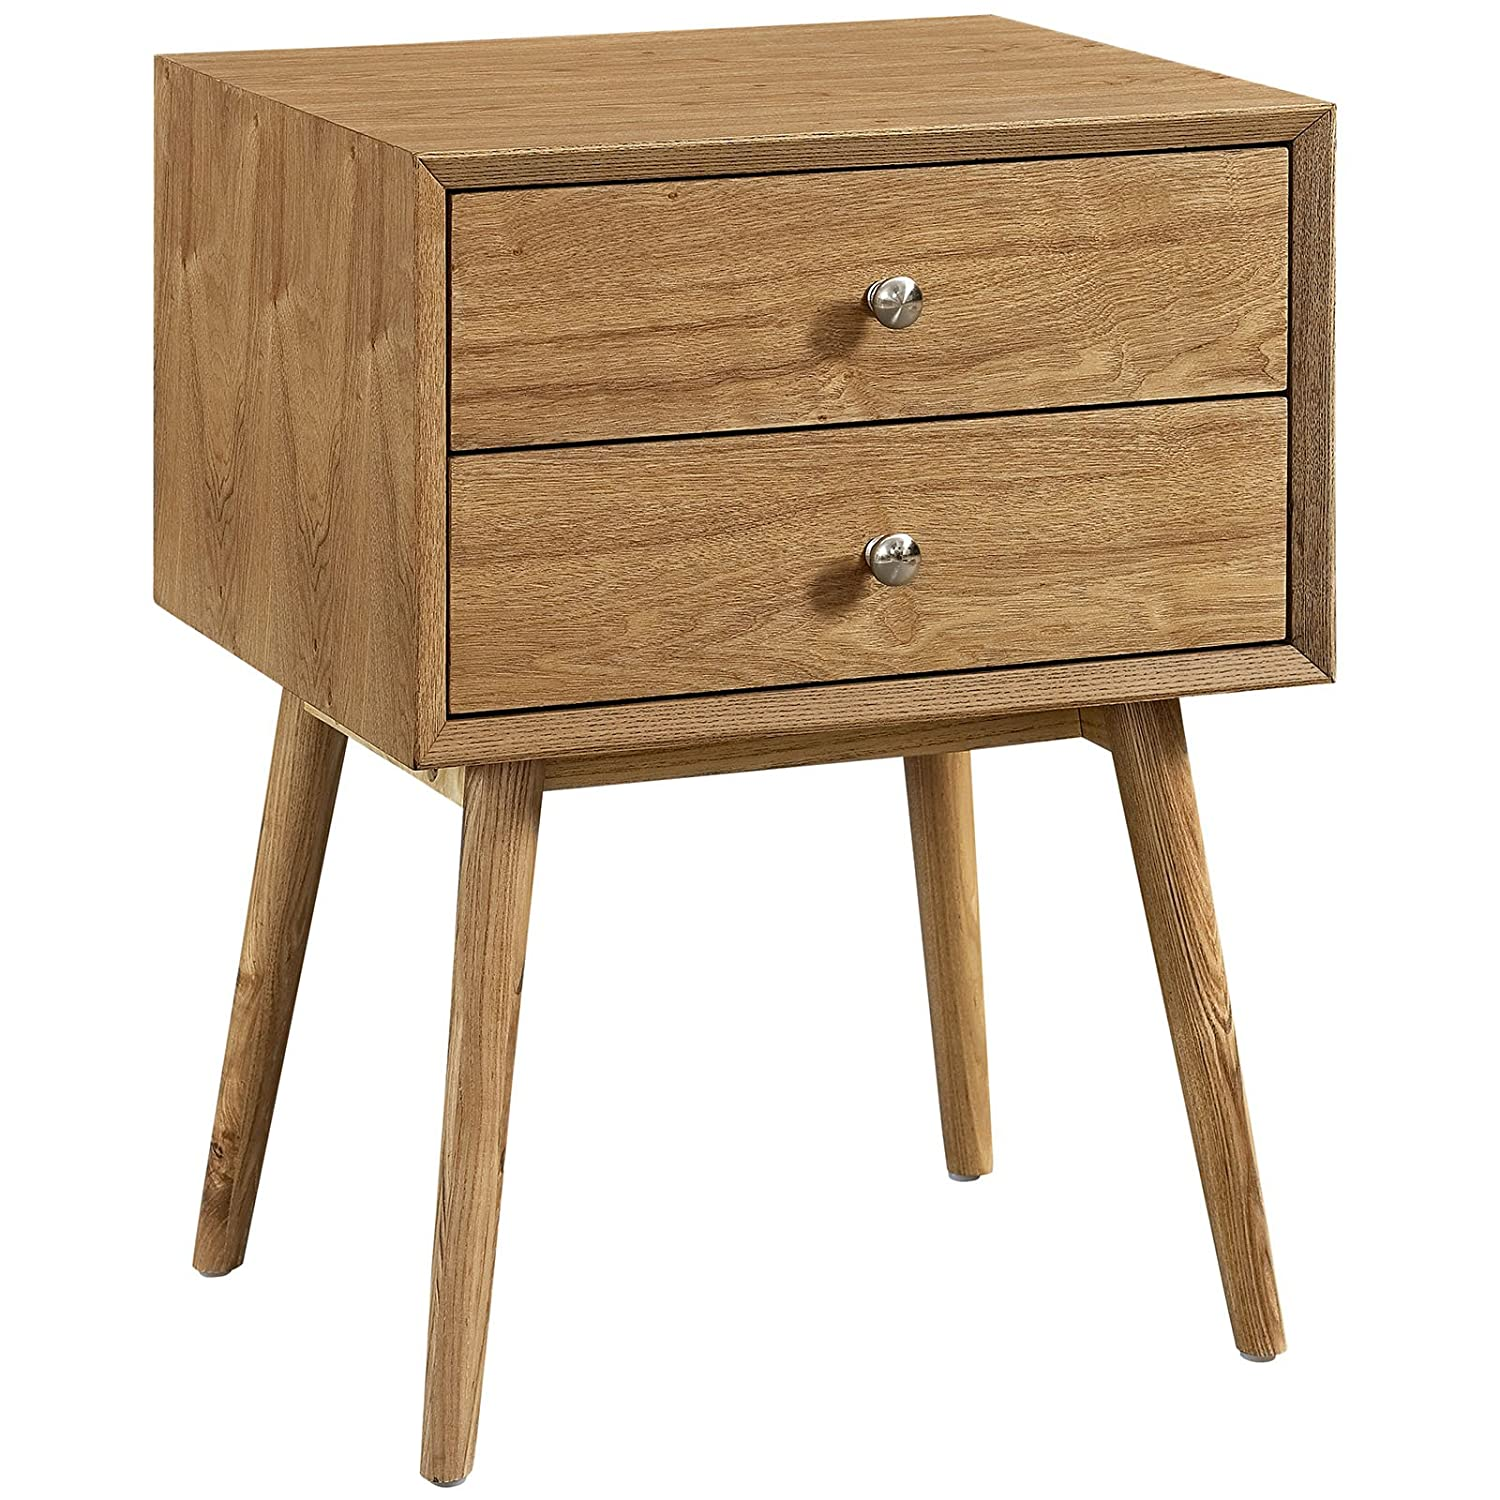 Modern night stand Mid Century Modern Modway Dispatch Mid Century Modern Nightstand In Natural Natural End Table For Bedroom Lamps Bed Stand Available In Black White Natural Walnut Amazoncom Amazoncom Modway Dispatch Mid Century Modern Nightstand In Natural